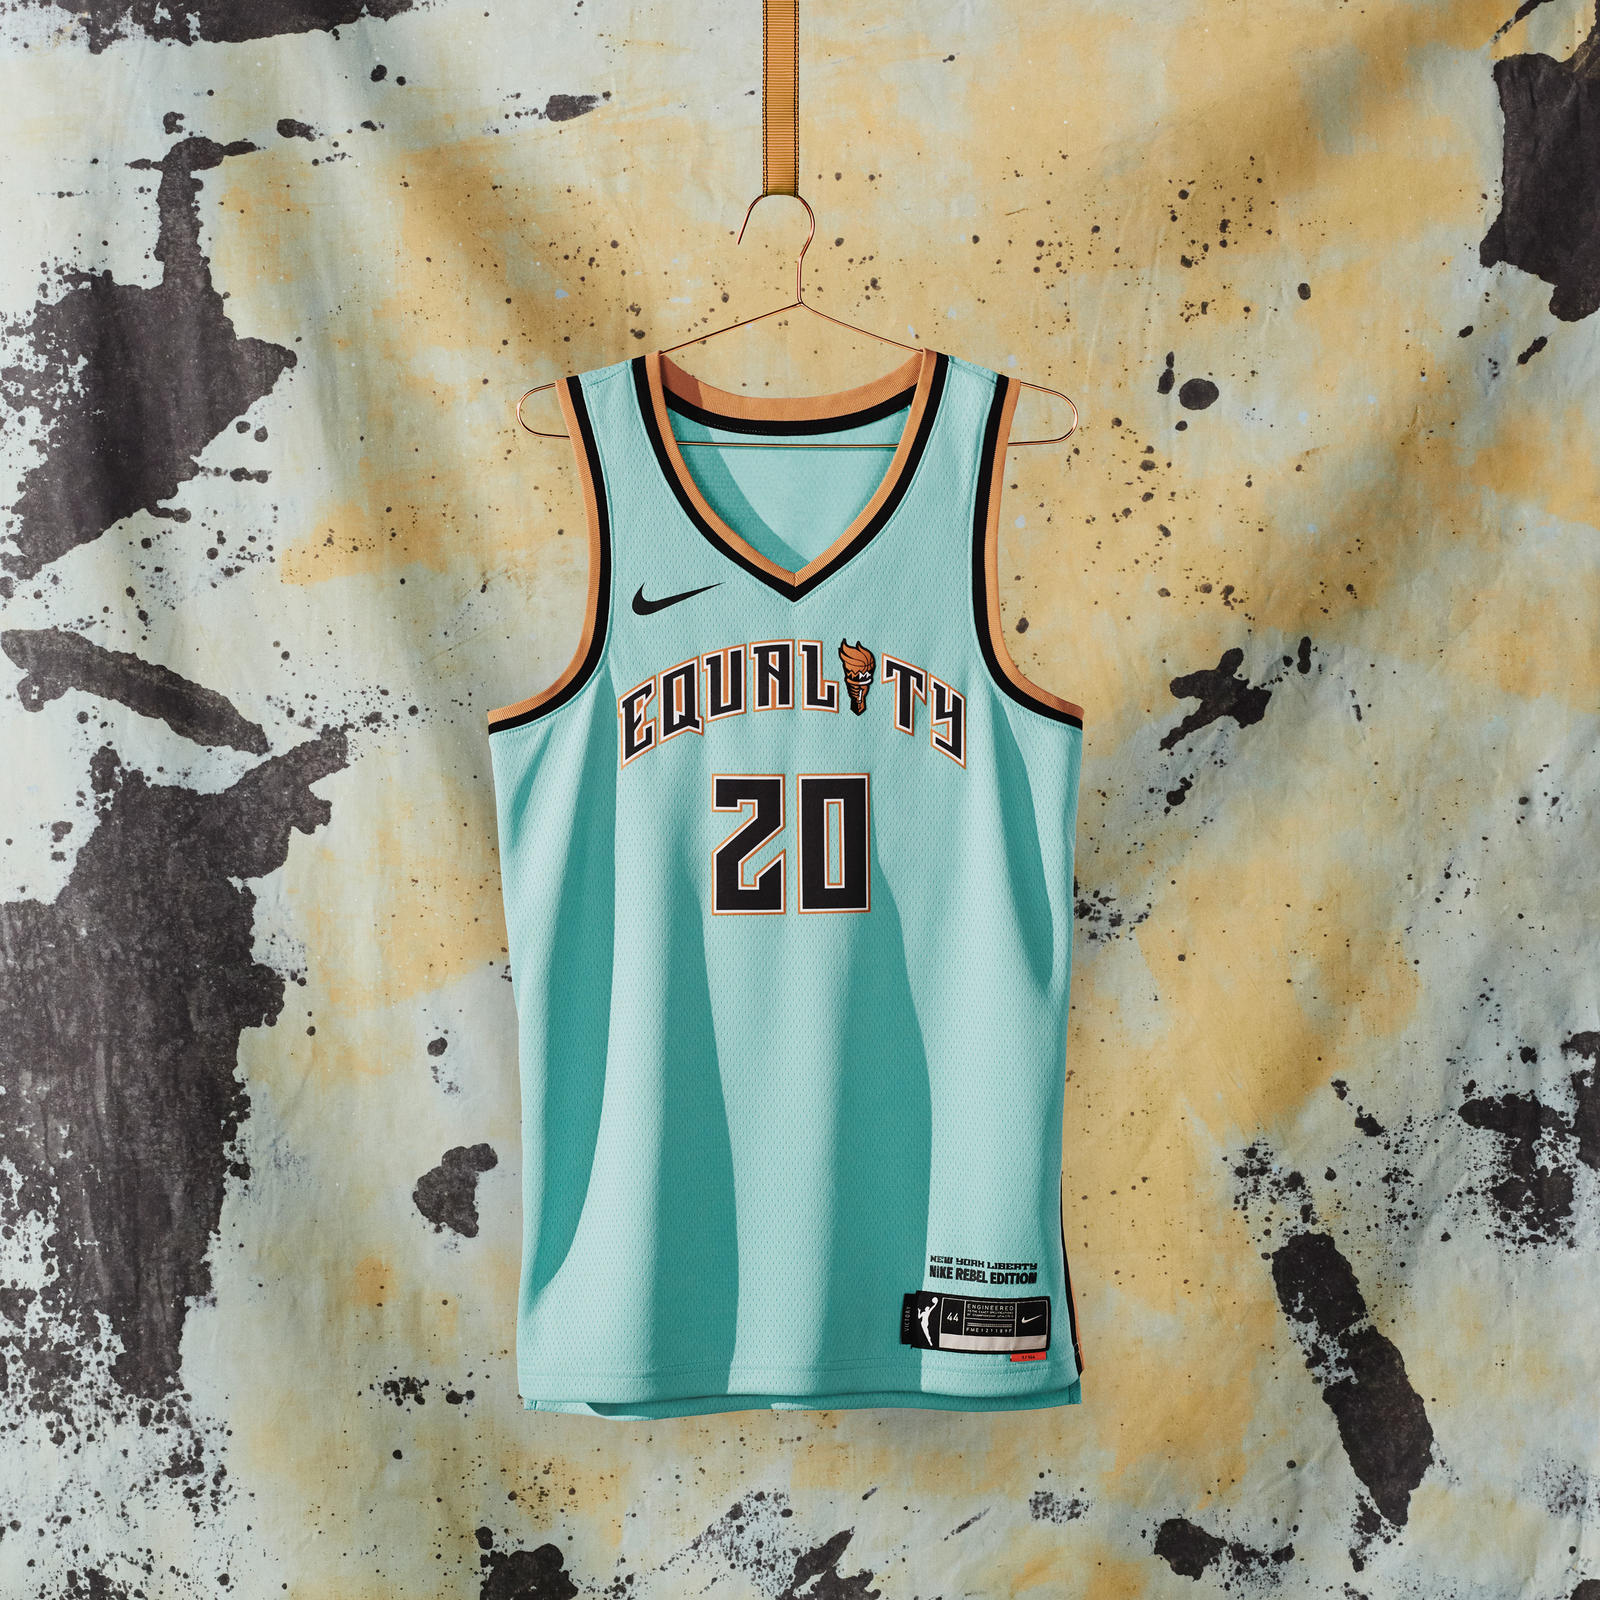 Nike WNBA 2021 Uniform Editions  20